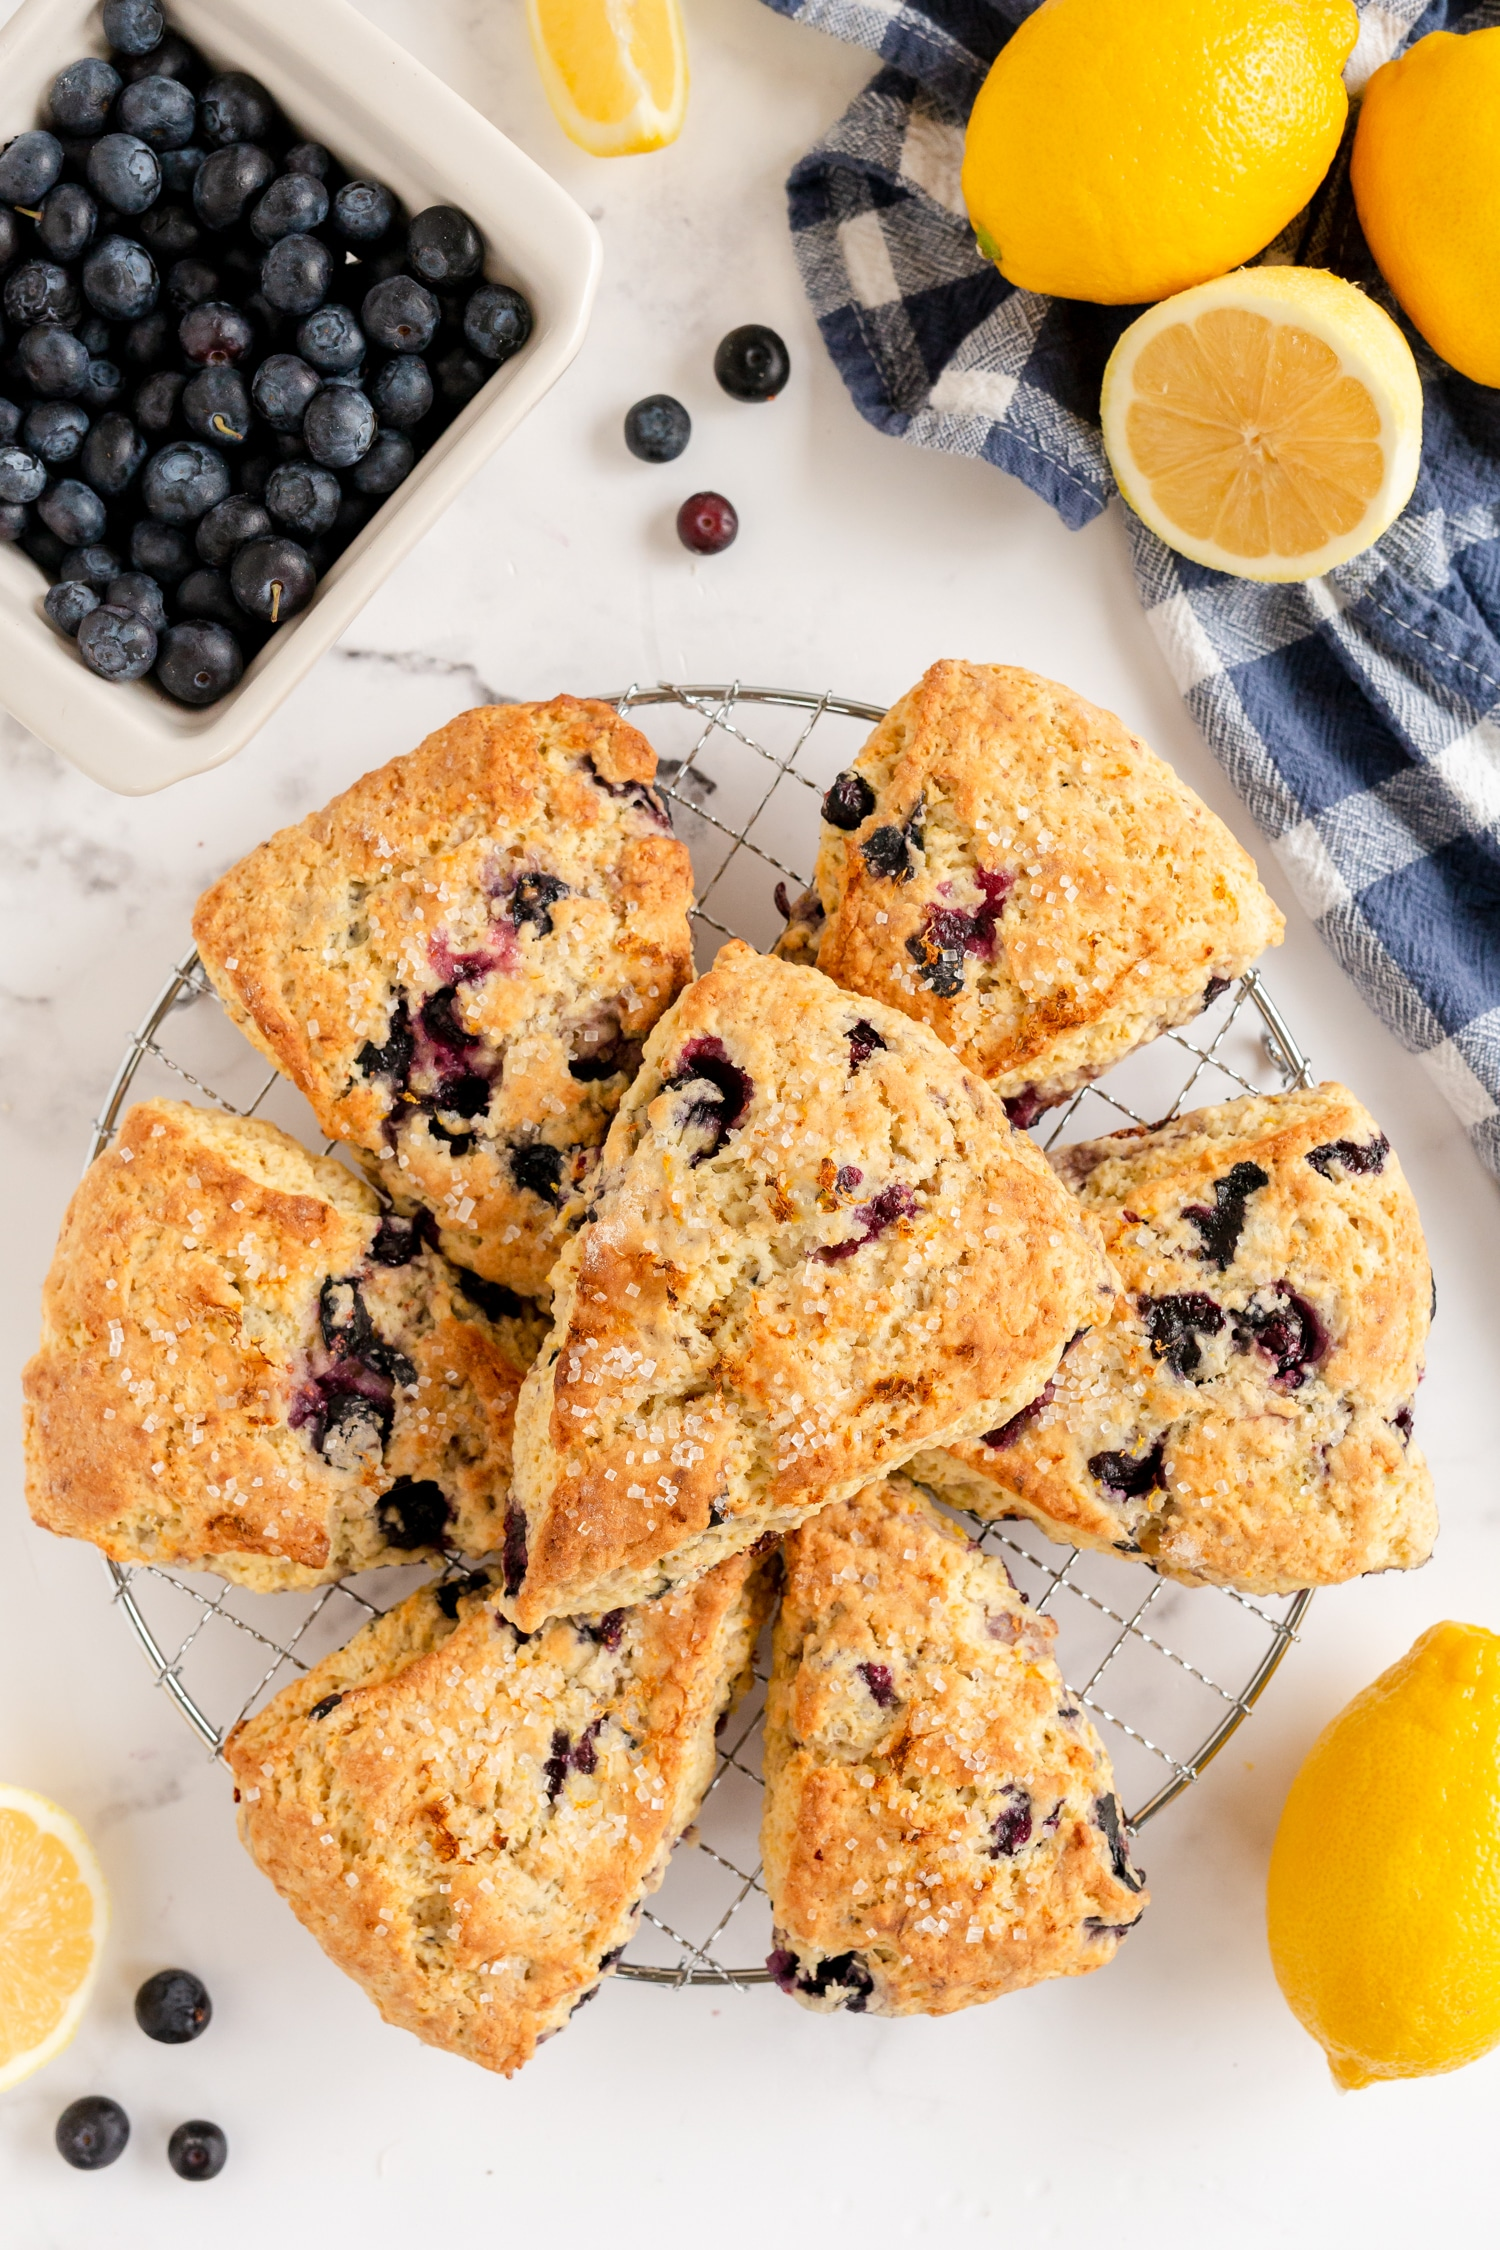 lemon blueberry scones on platter with lemons and blueberries as props